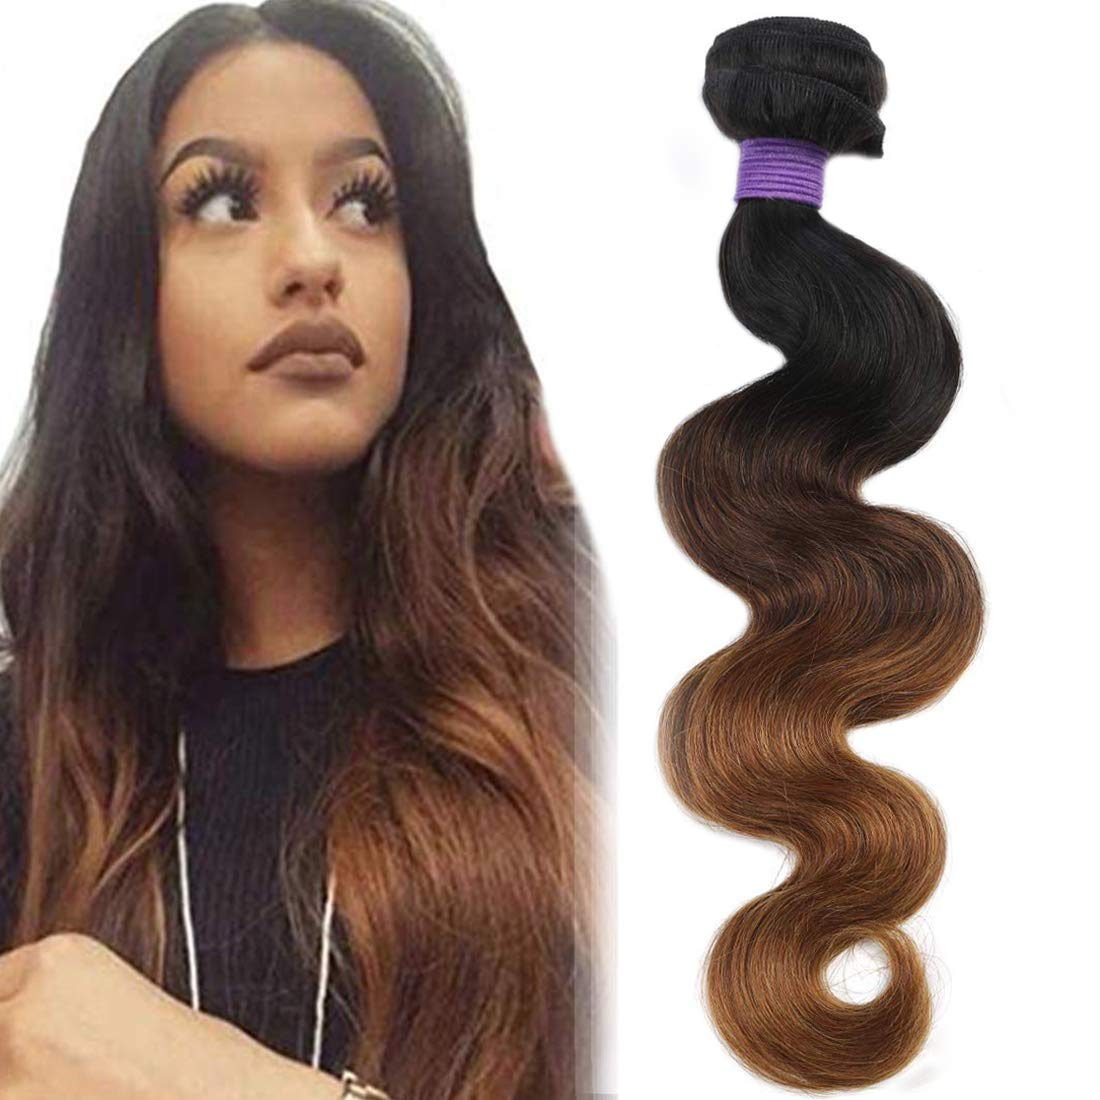 CRANBERRY Ombre Brazilian Hair New color Body Wave 4 One 1b 3 Bundle Max 68% OFF